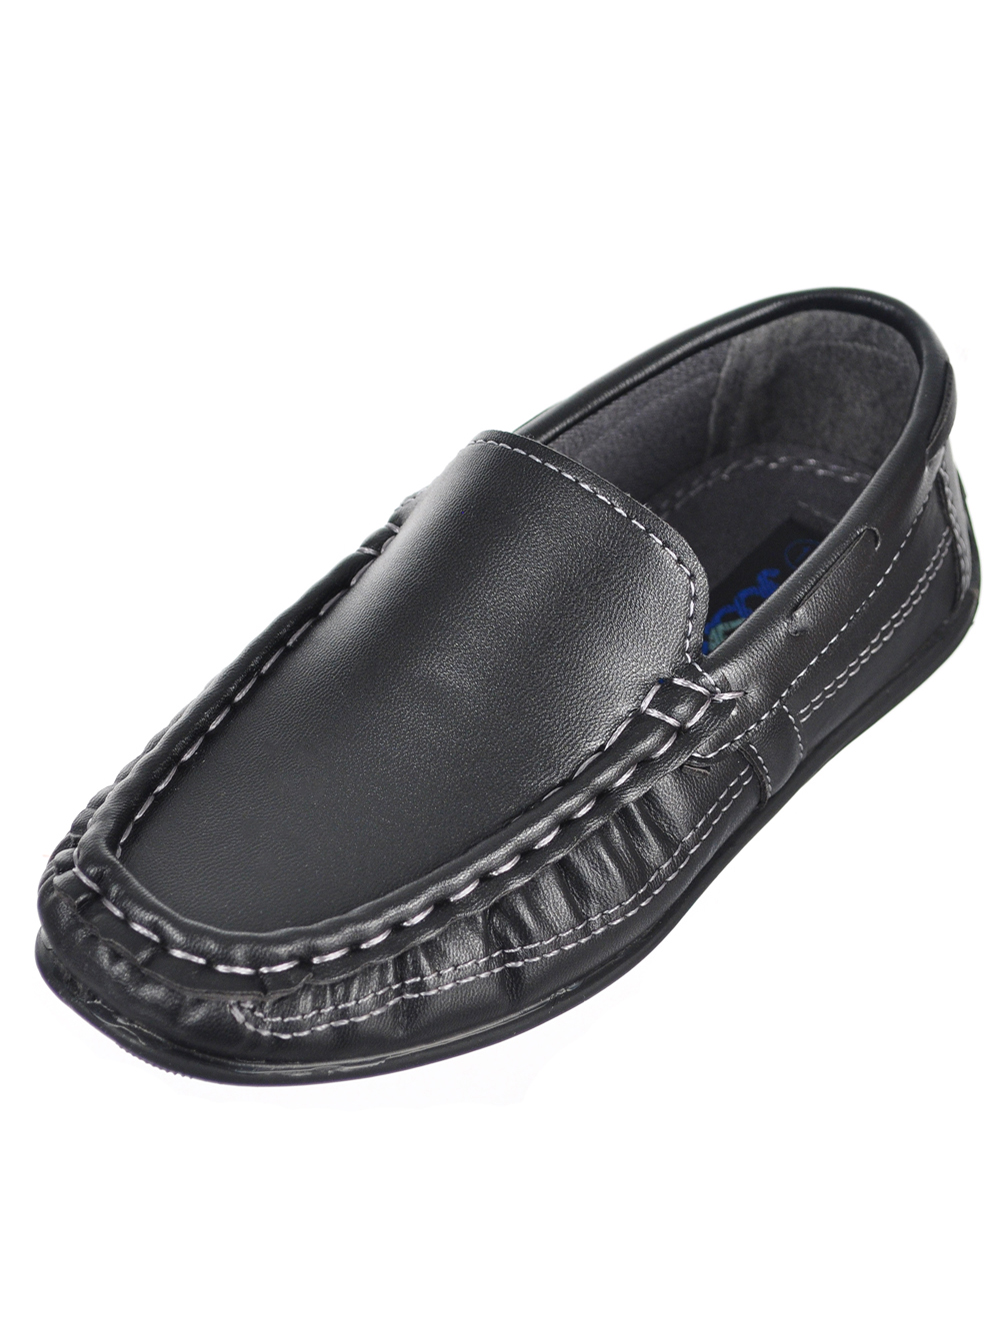 Jodano Collection Boys Driving Loafers